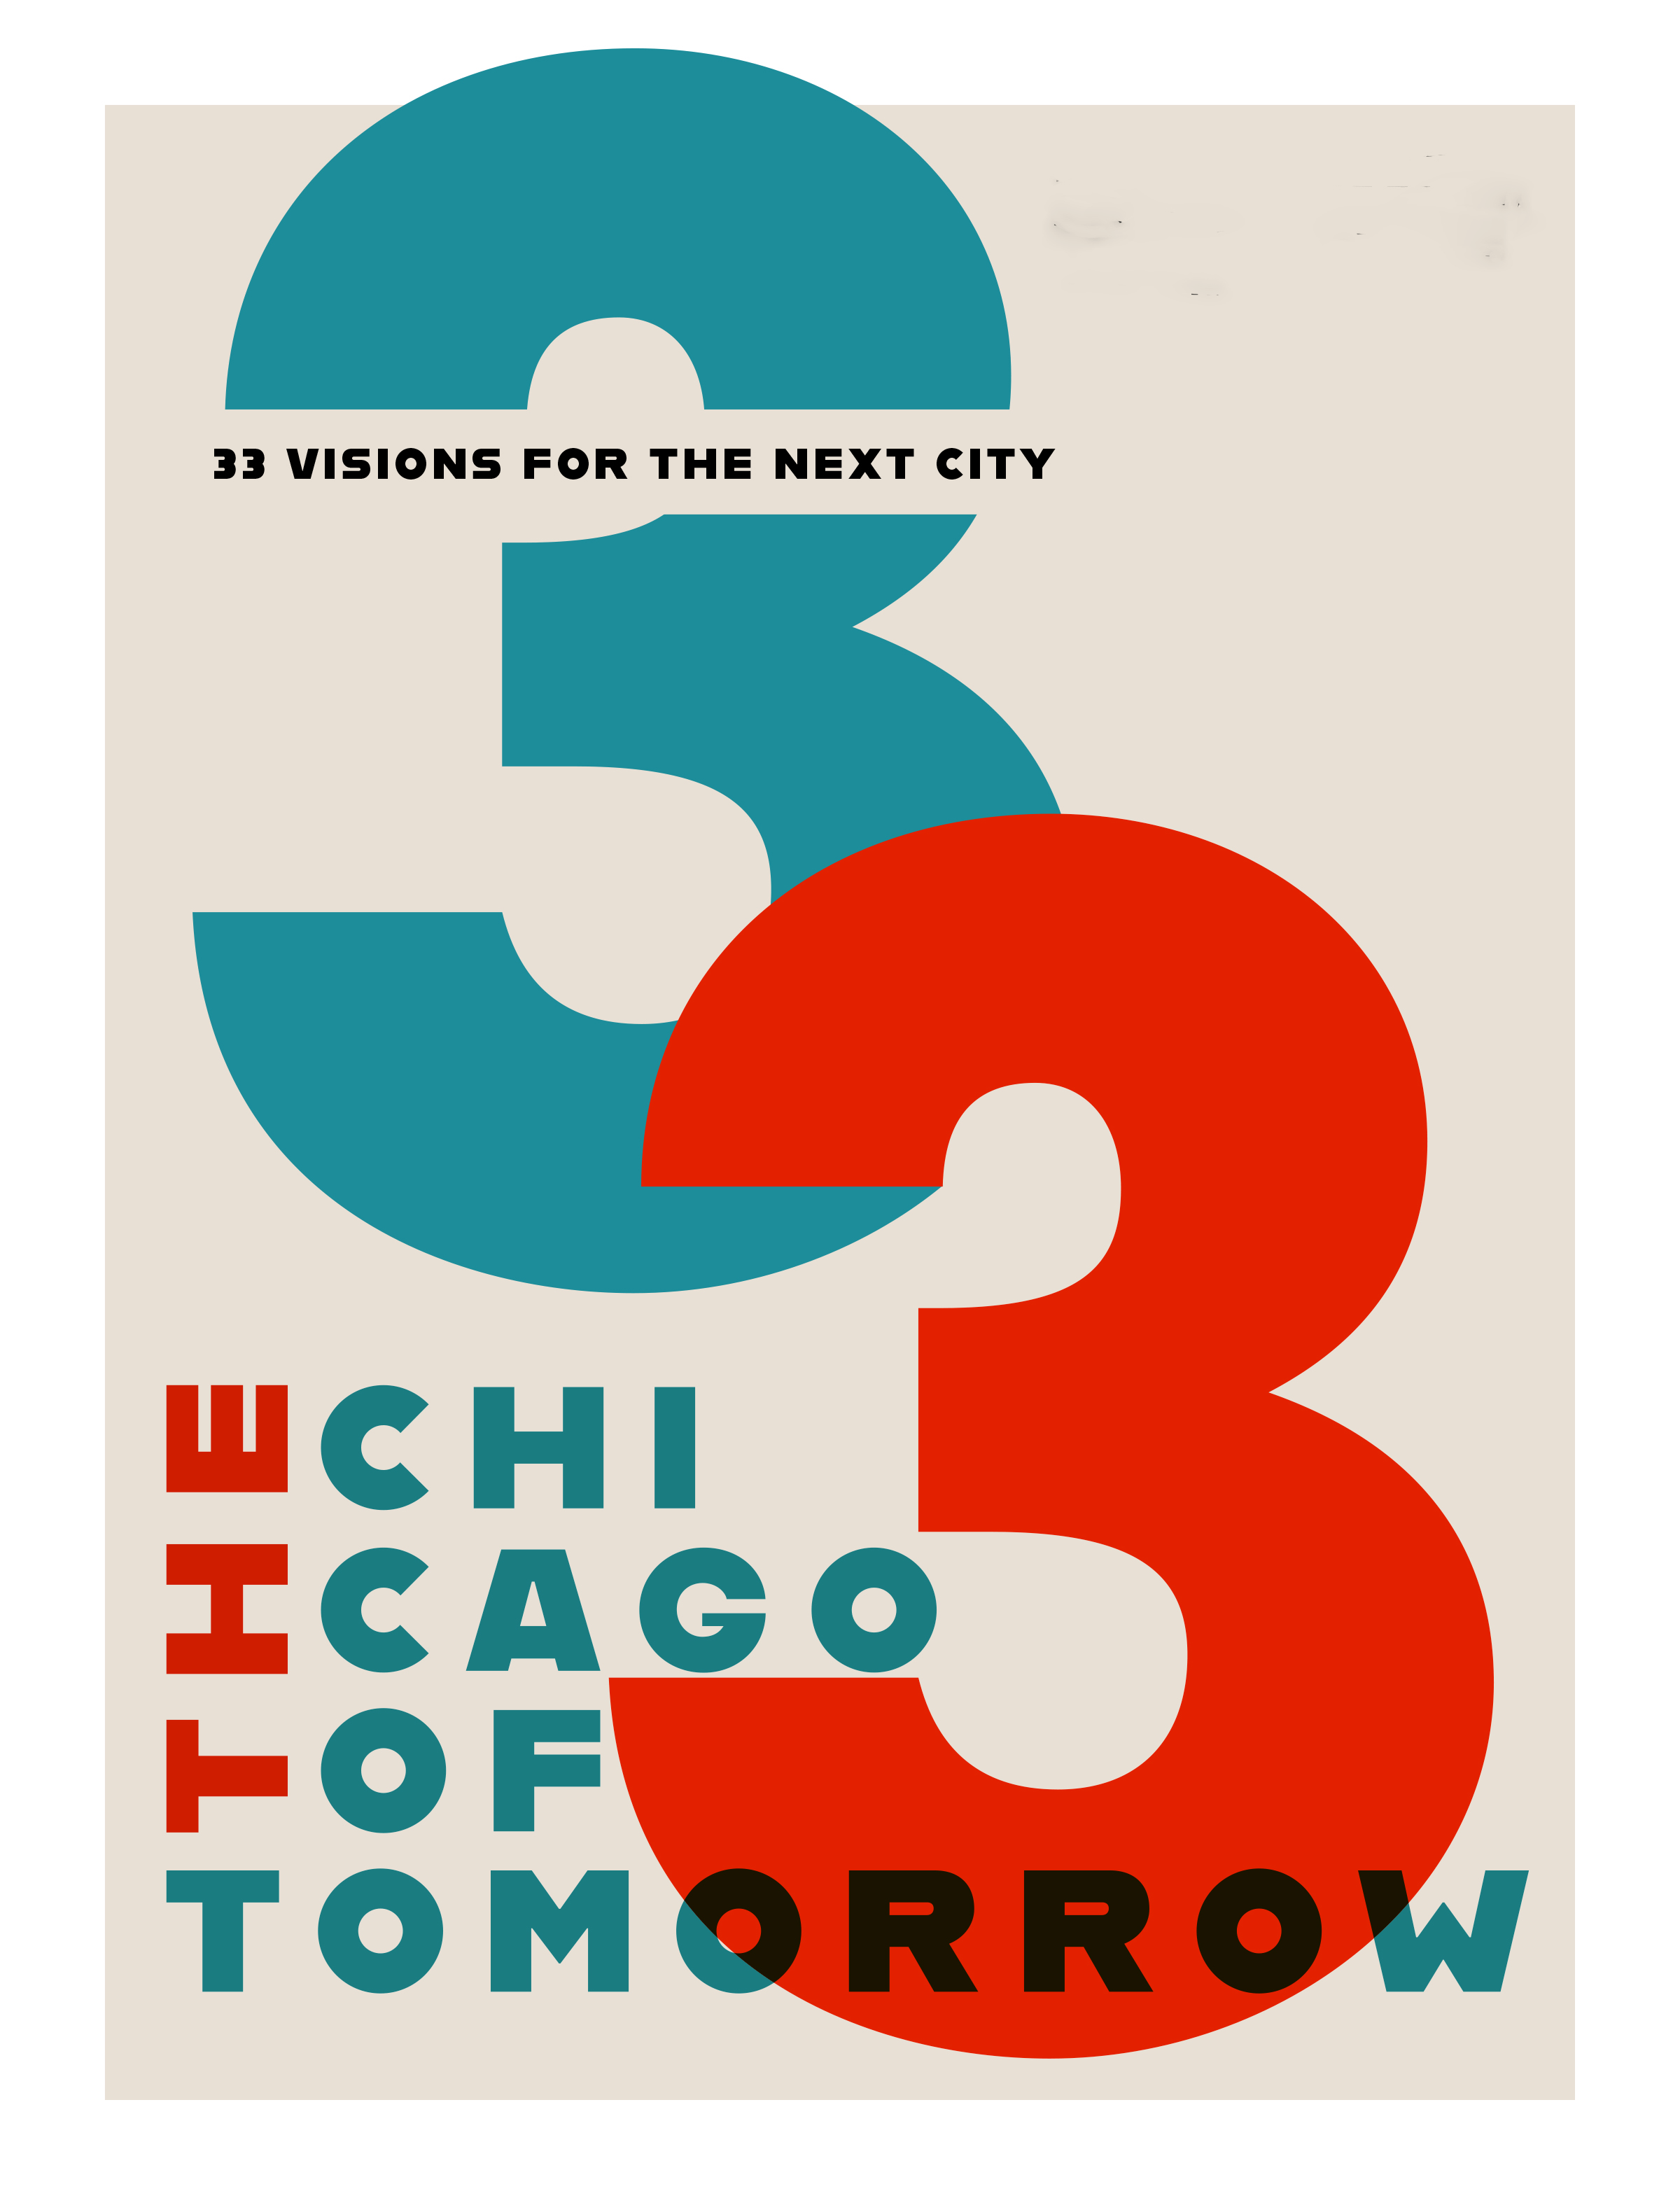 The Chicago of Tomorrow: Thirty-three visions for the next